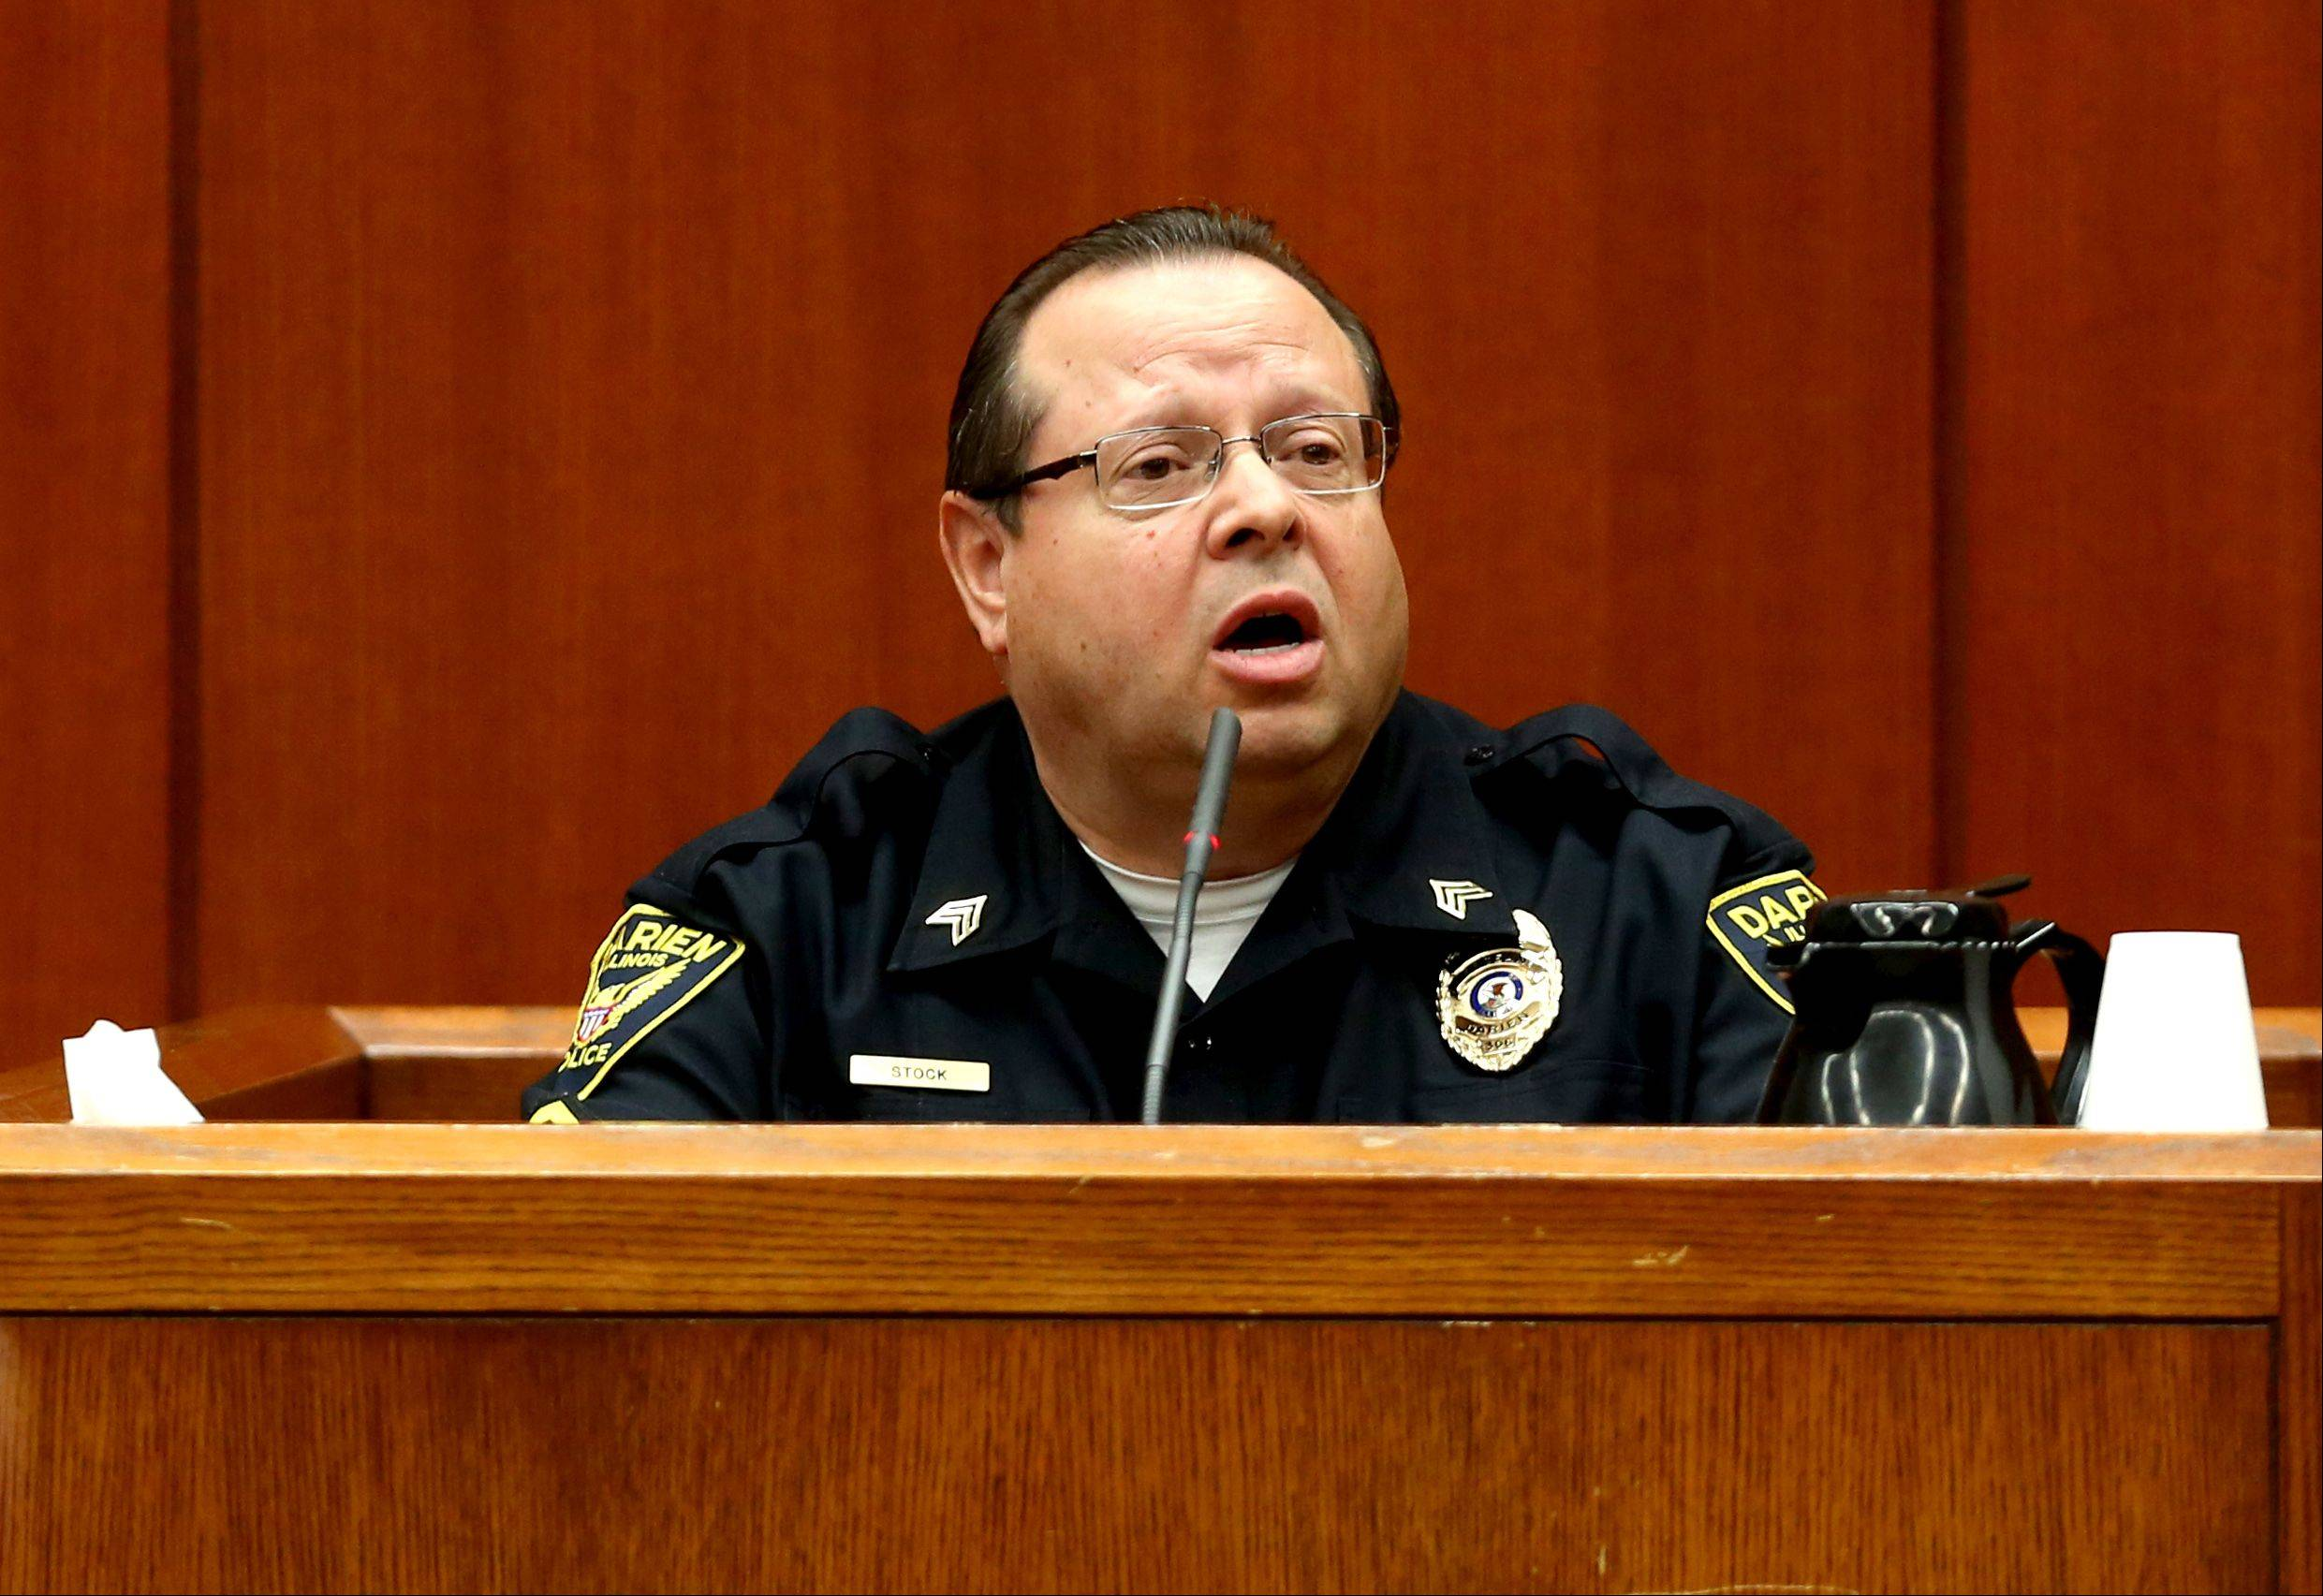 Darien police Sgt. David Stock testifies Thursday at the Johnny Borizov triple-murder trial at the DuPage County courthouse in Wheaton.